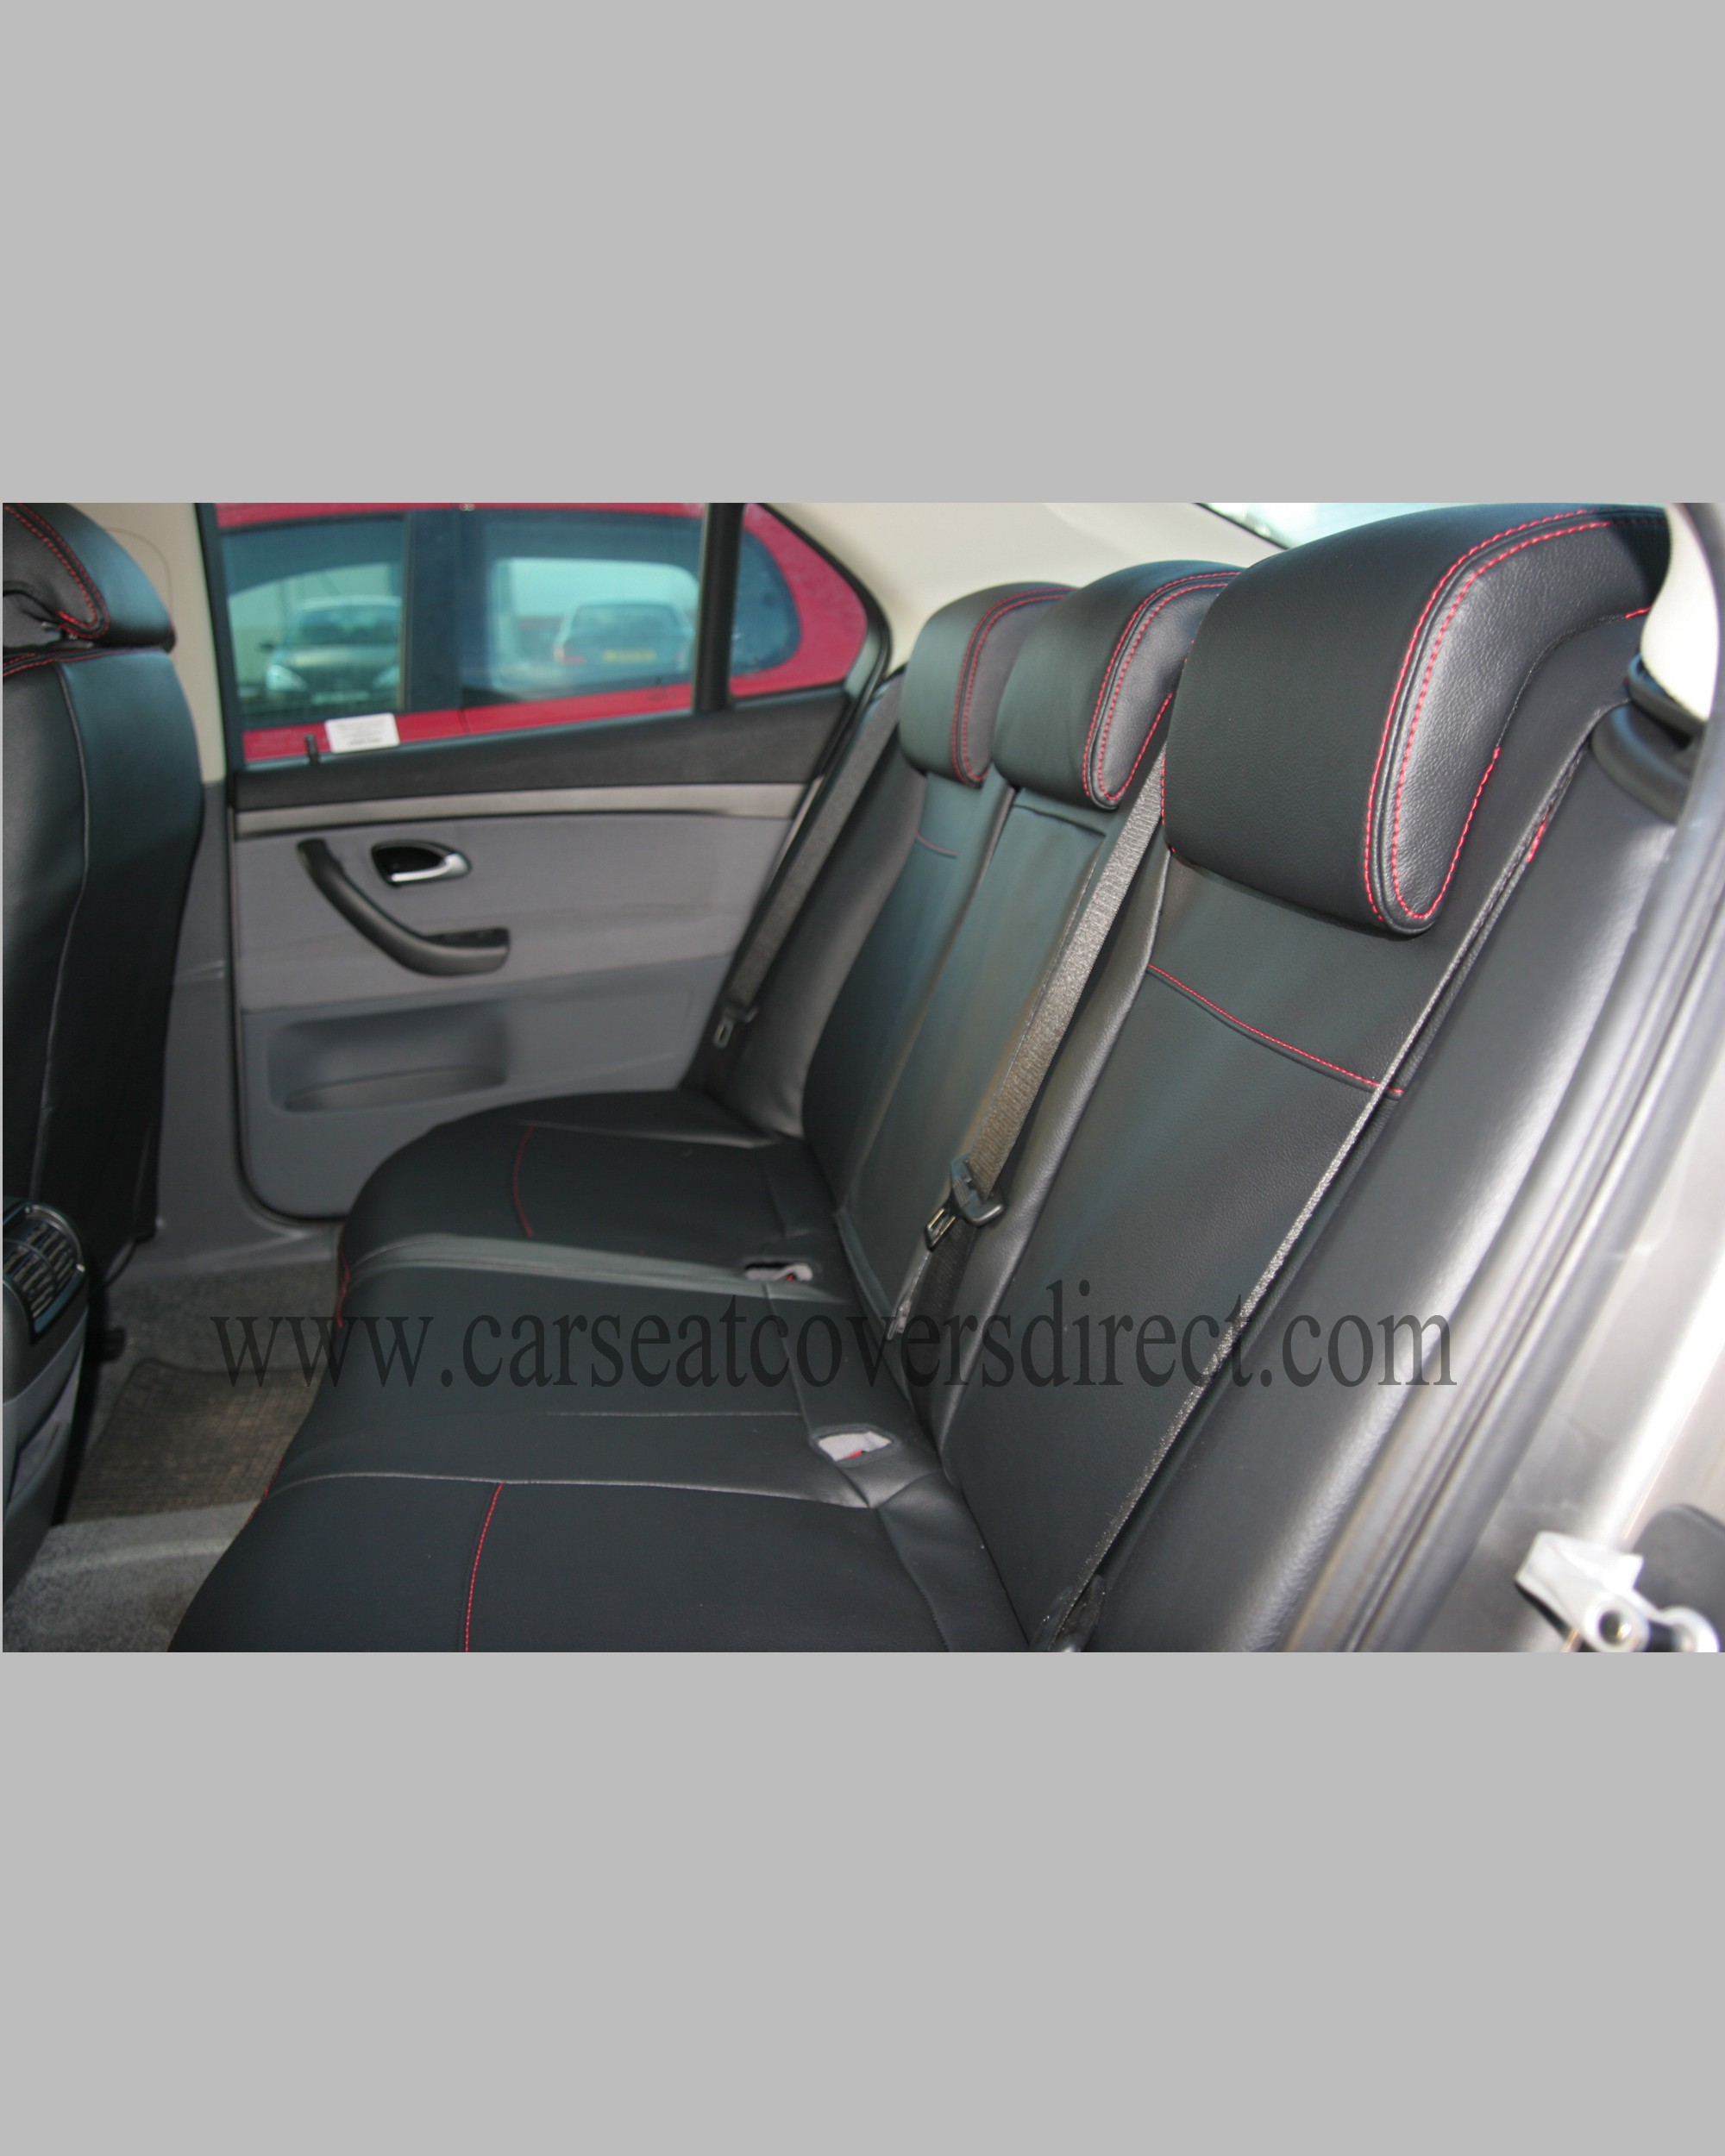 hight resolution of custom saab 9 3 seat covers more images click to view